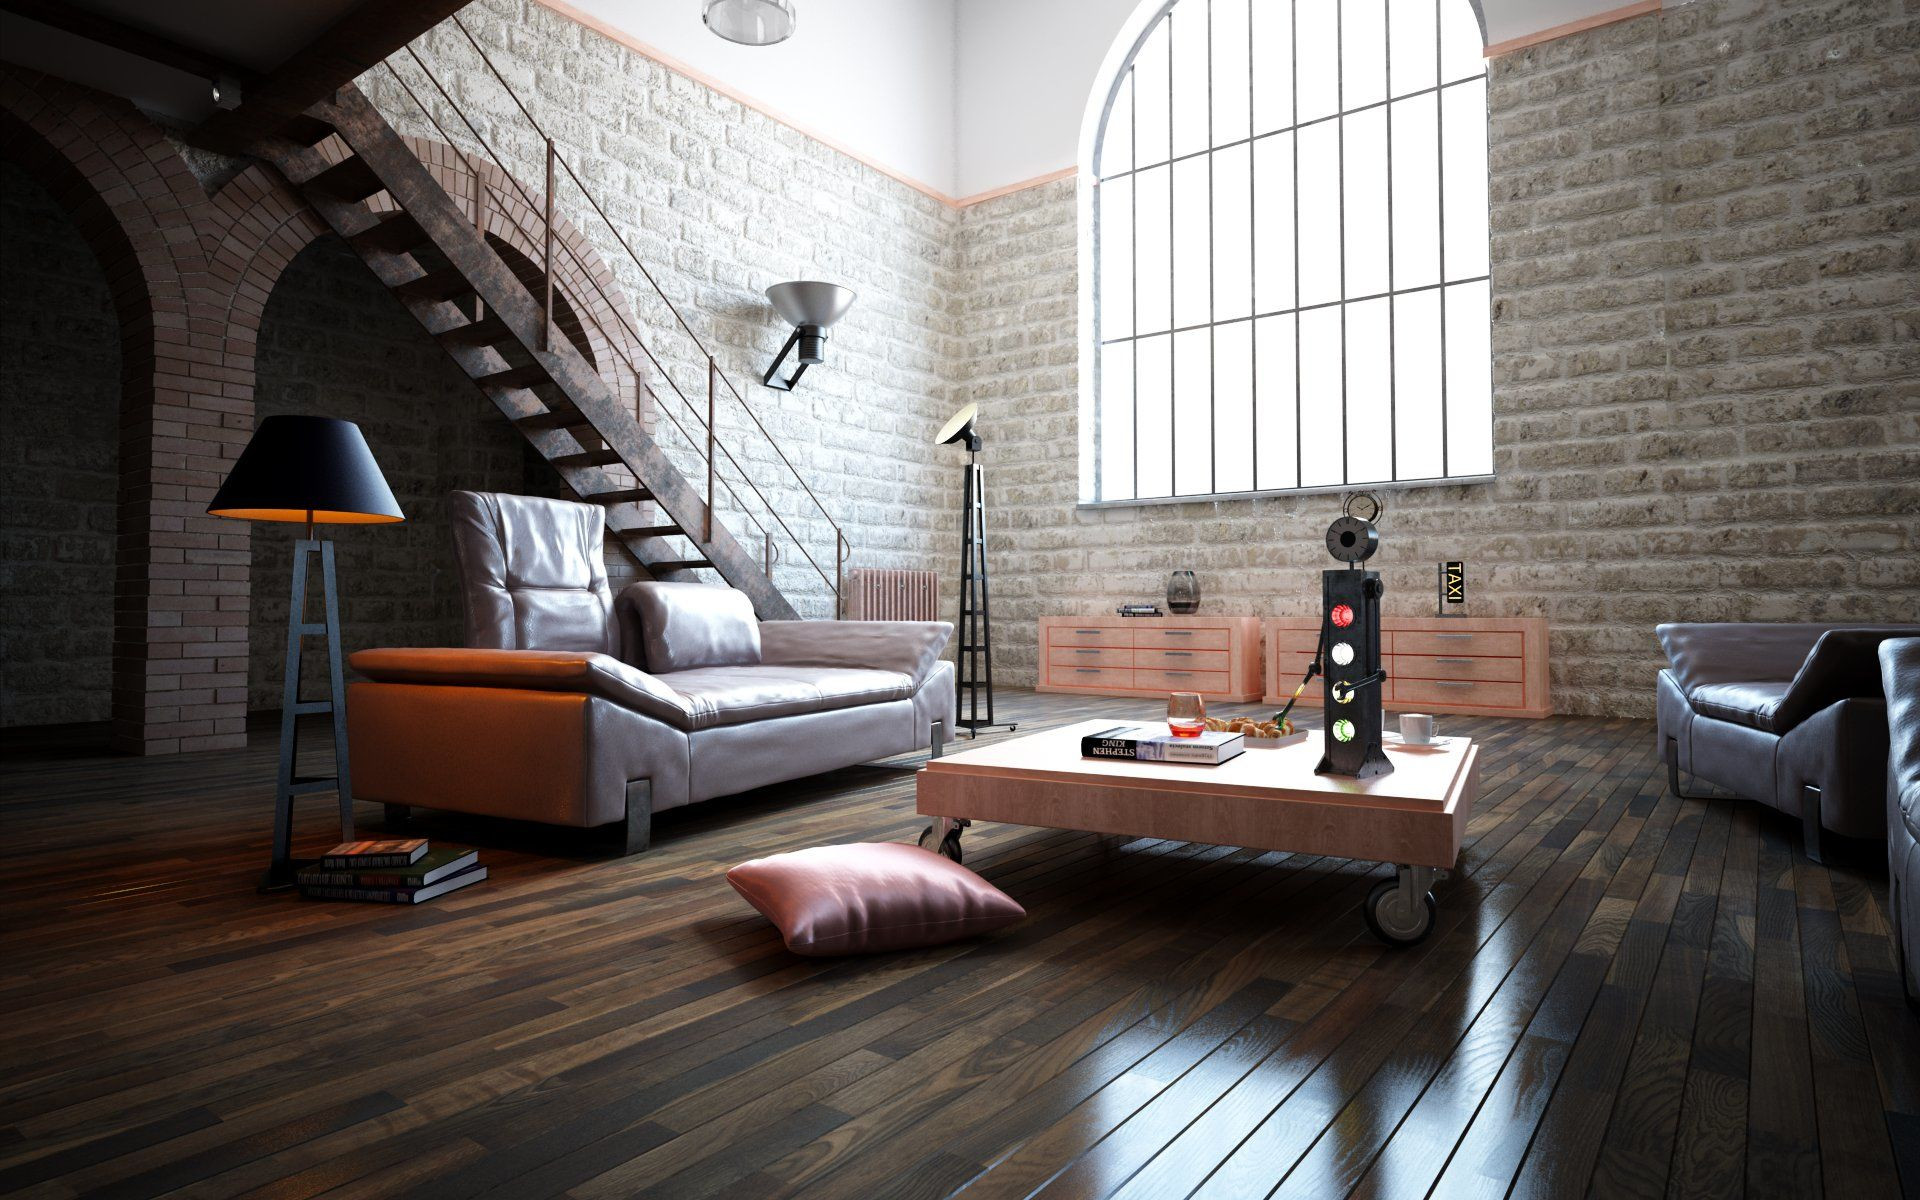 dark chocolate hardwood floors of architects advice bright or dark floor jawor parkiet inside choosing the right floor color enables achieving different visual effects bright milky colors make rooms more light flooded grey hues are cold and modern